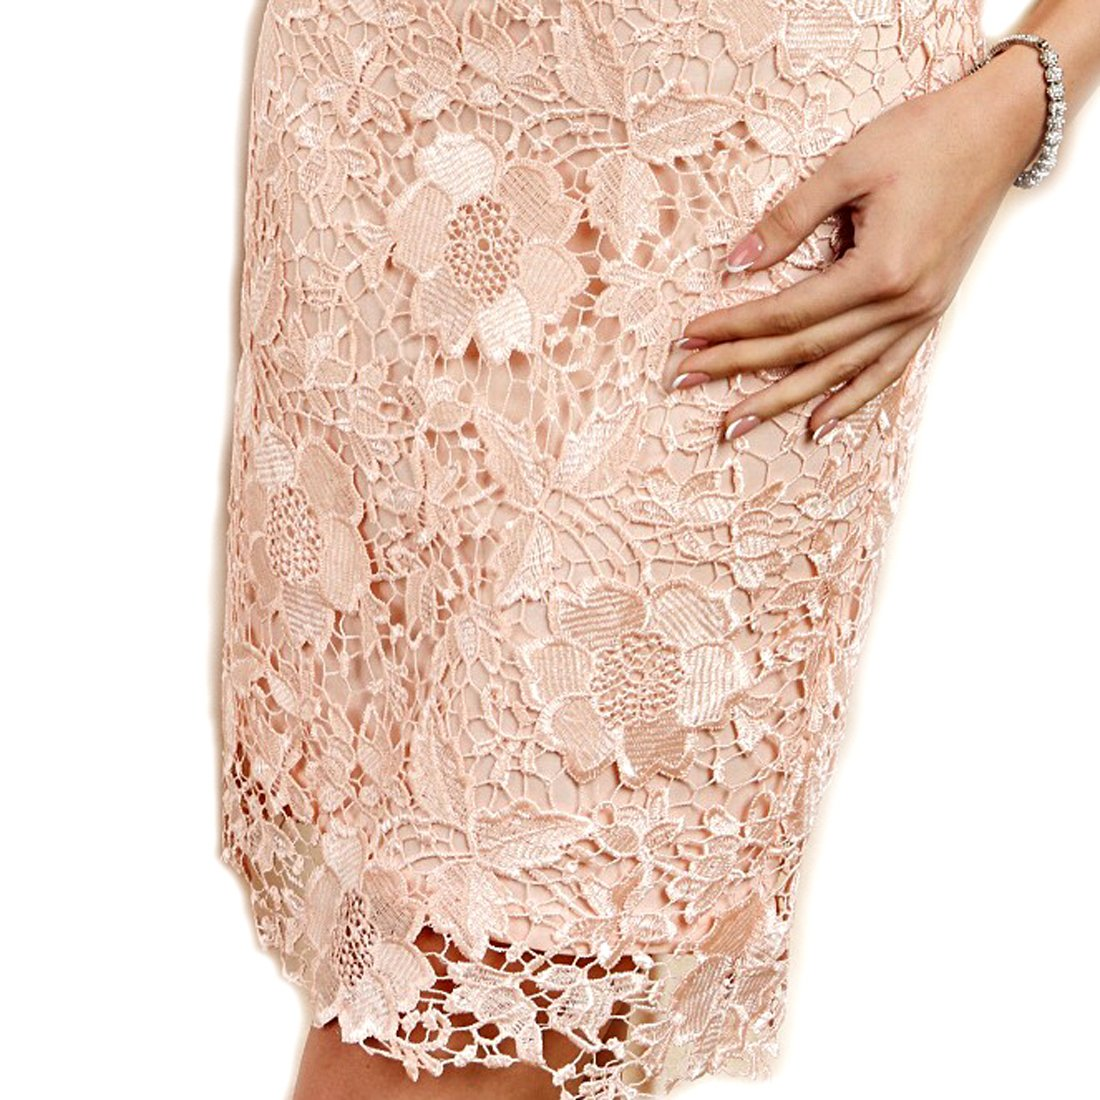 a5e28a7268d5 Crazy4Bling Soieblu Blush Lace Yoke & Mesh Off The Shoulder Embroidery  Bodycon Dress, Medium at Amazon Women's Clothing store: